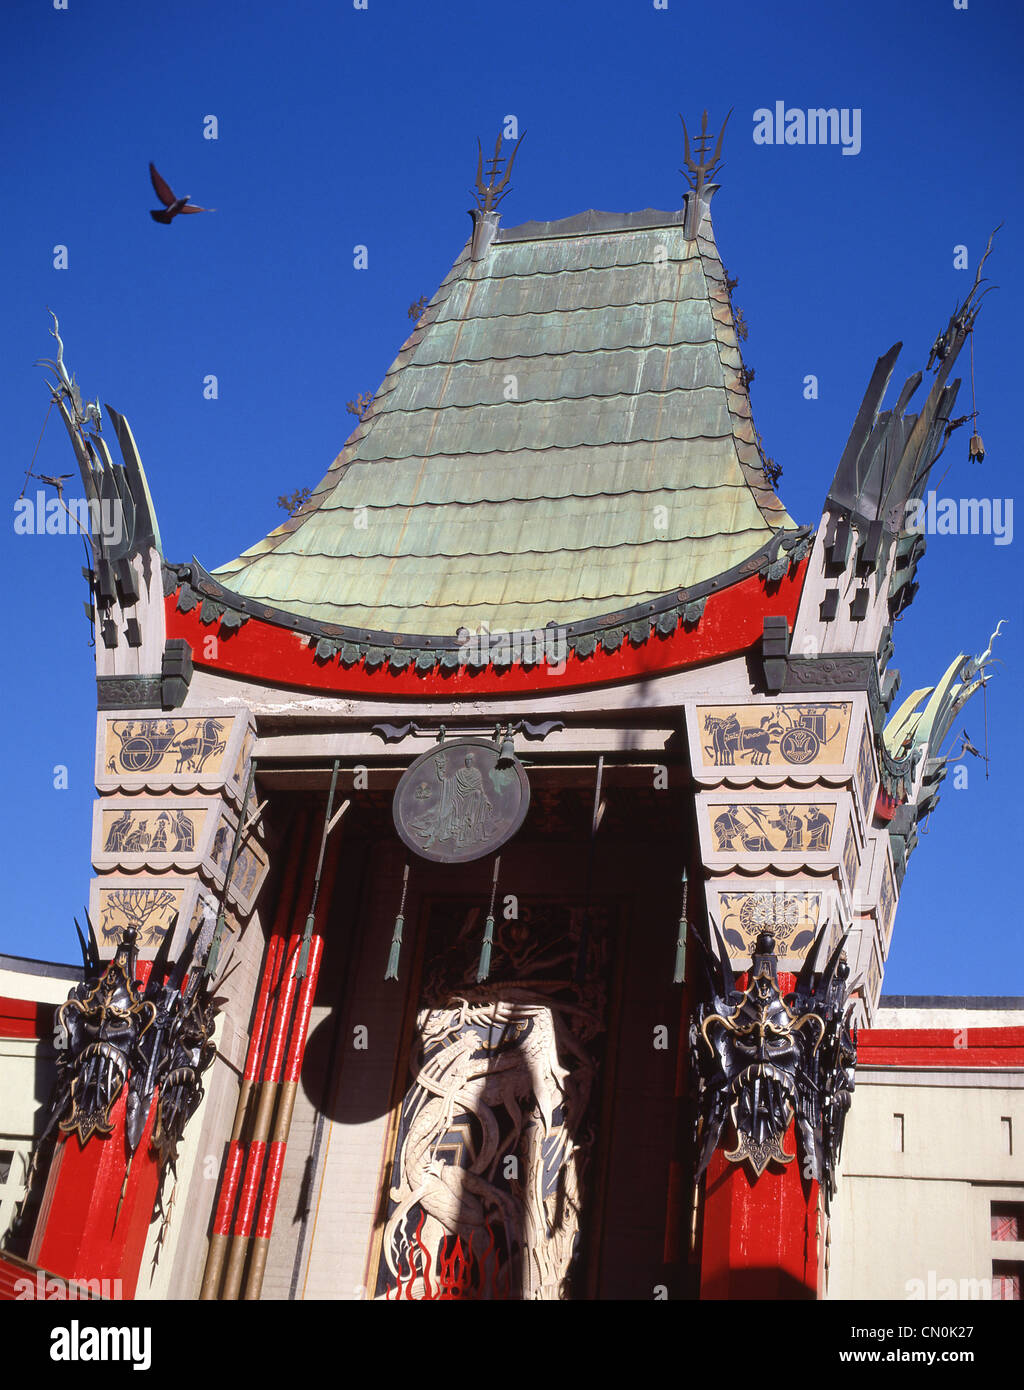 Front entrance of TCL Chinese Theatre, Hollywood Boulevard, Hollywood, Los Angeles, California, United States of - Stock Image